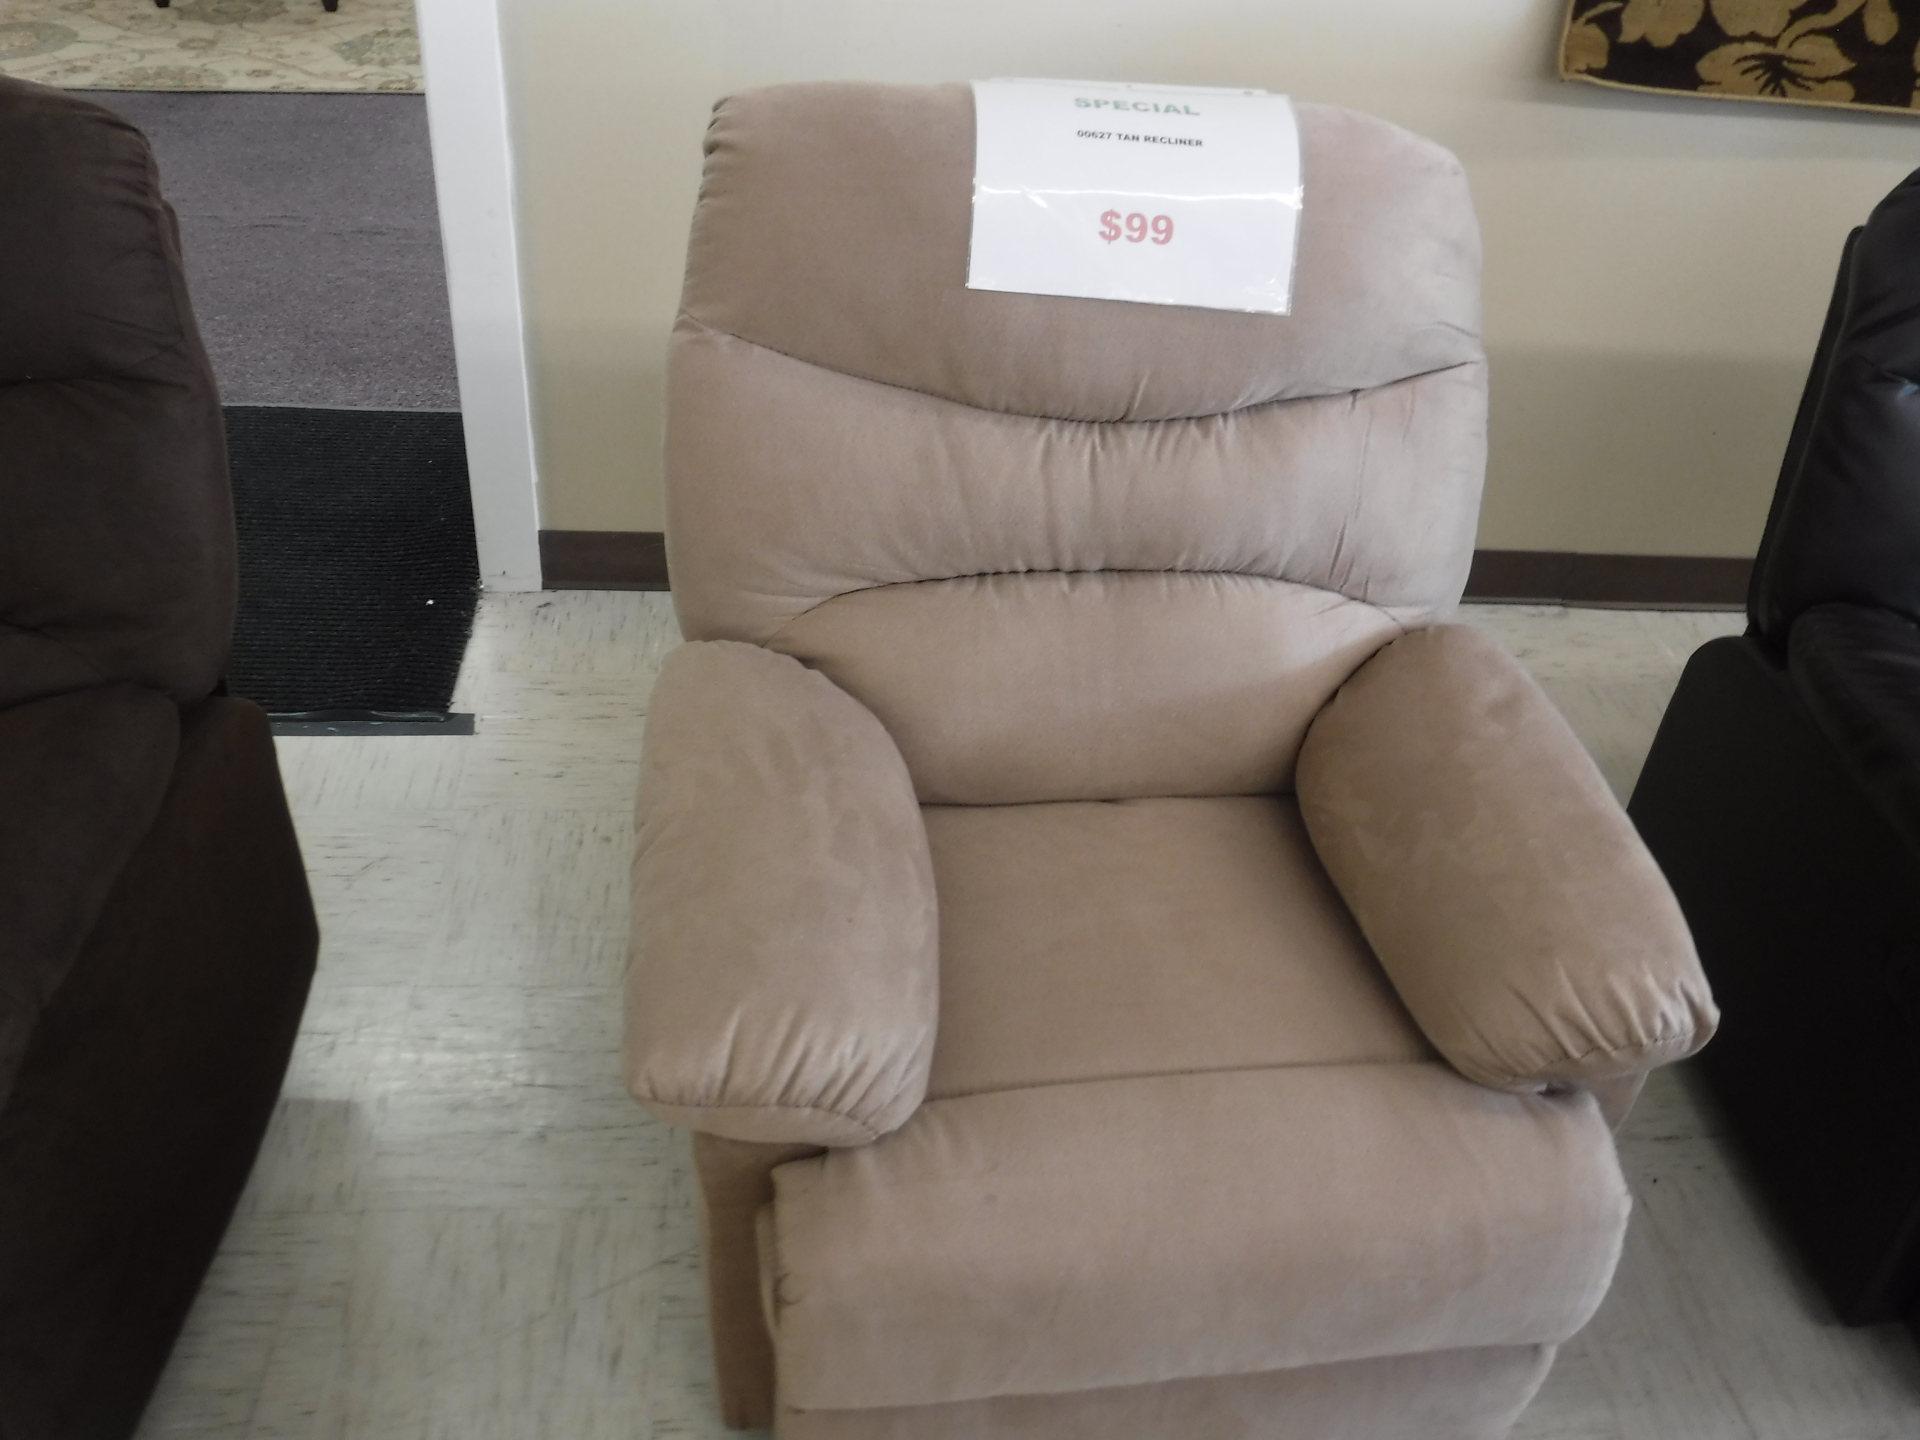 Only $ 99.00